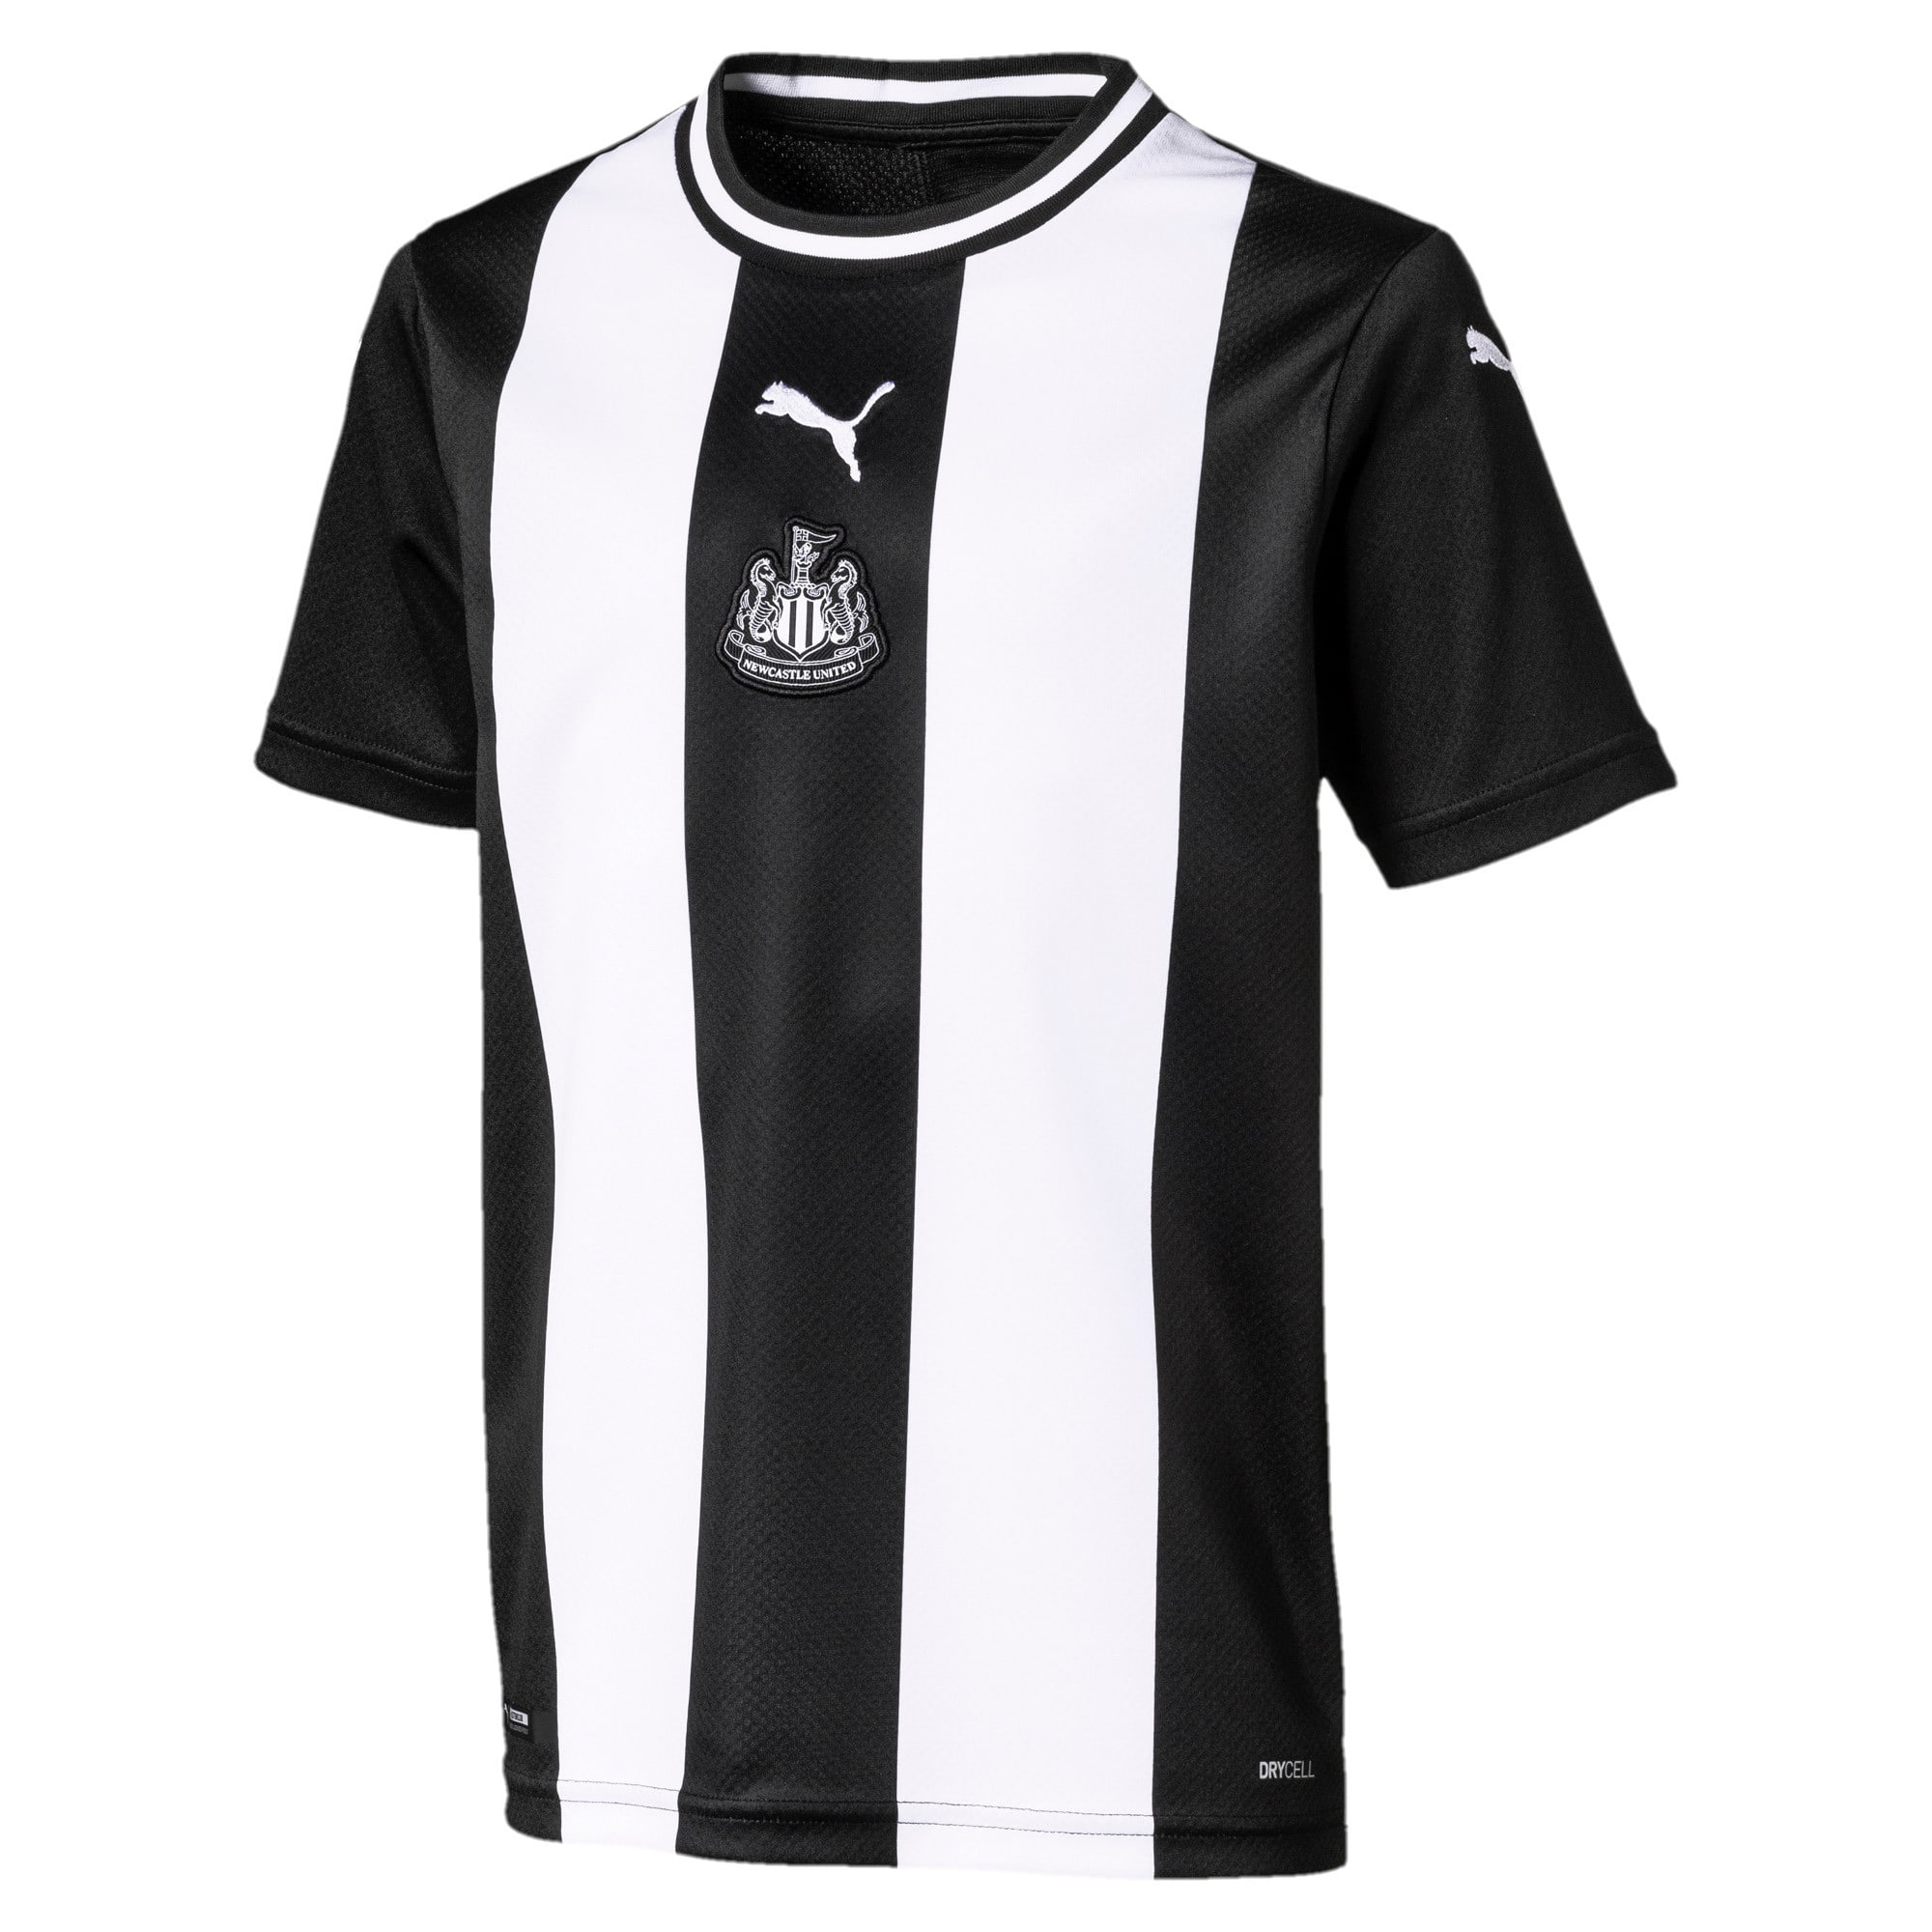 Thumbnail 1 of Newcastle United FC Kids' Replica Home Short Sleeve Jersey, Puma White-Puma Black, medium